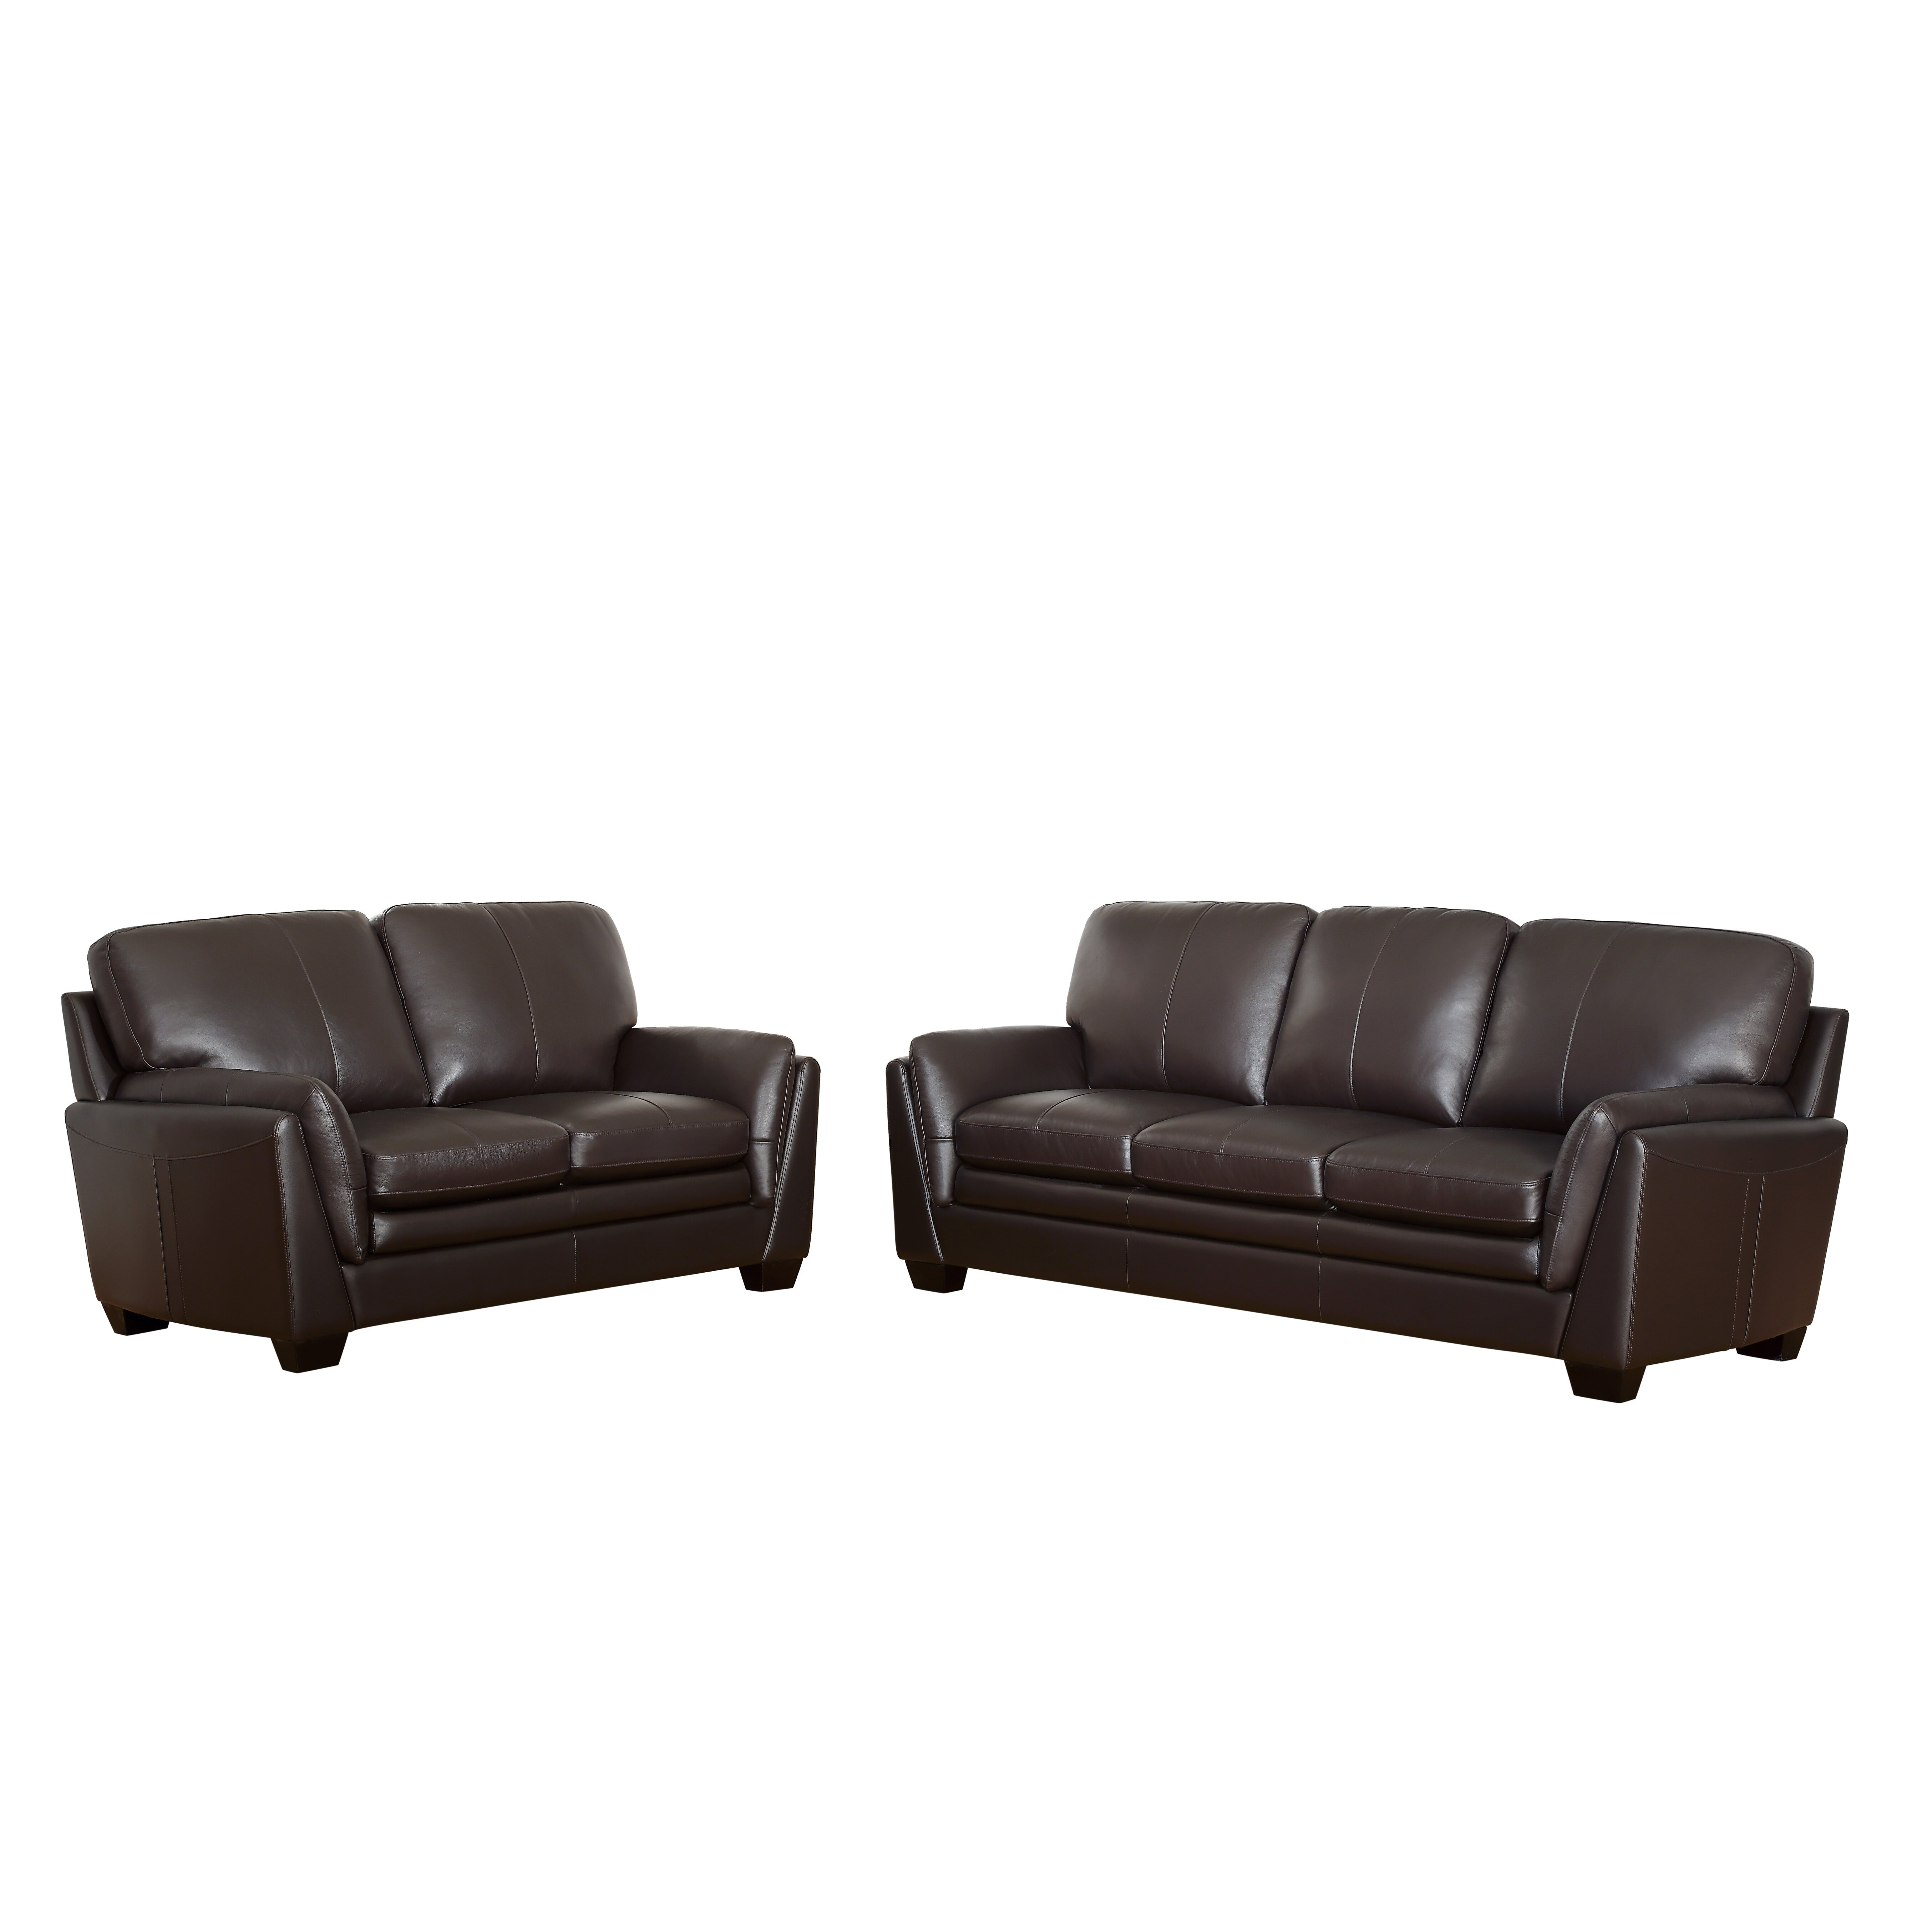 Darby Home Co Whitstran Top Grain Leather Sofa And Loveseat Set Wayfair